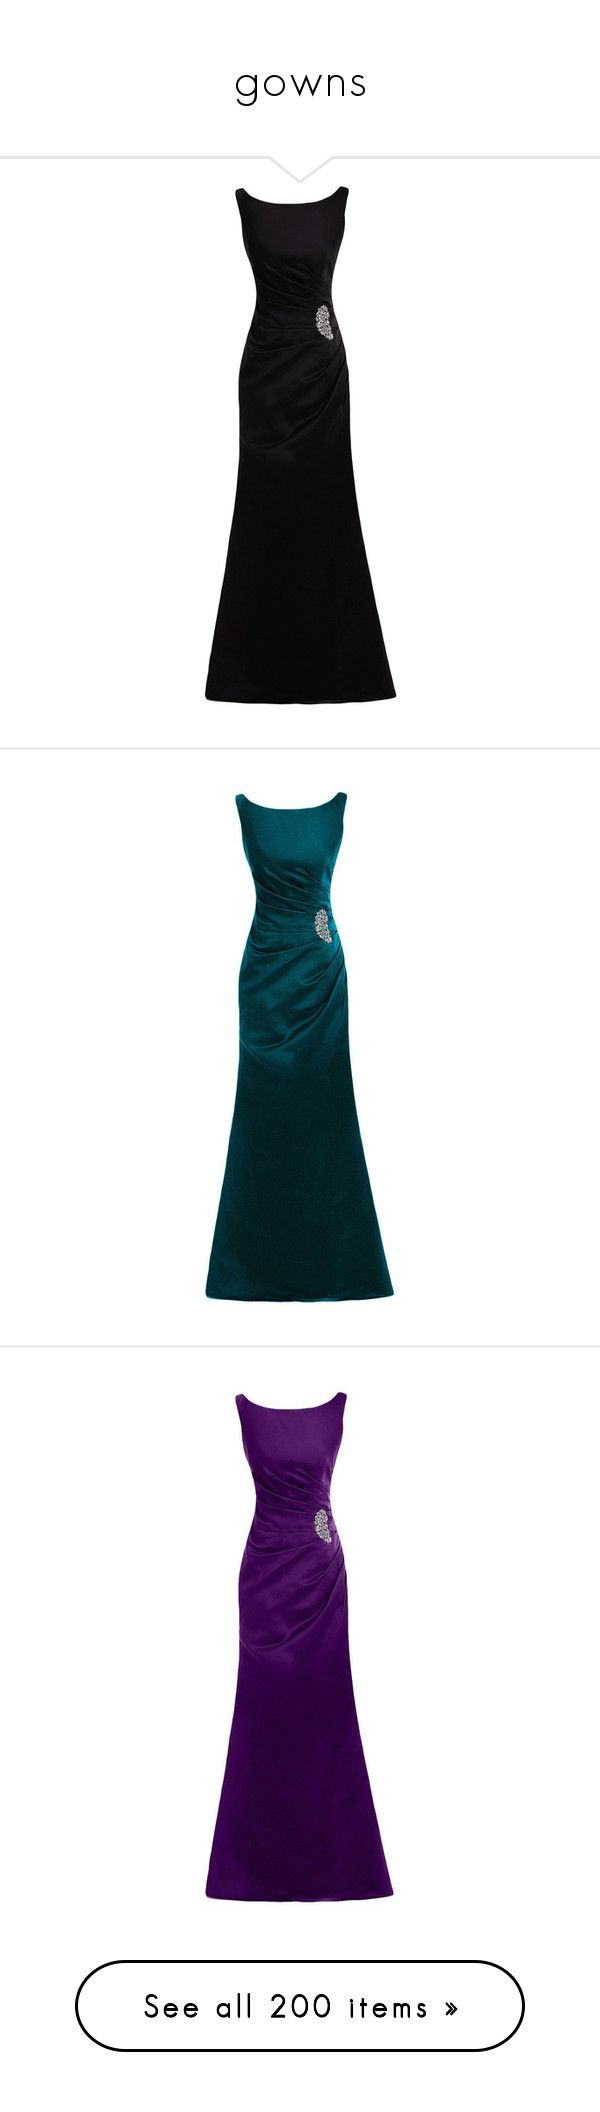 """gowns"" by kleinervampier ❤ liked on Polyvore featuring dresses, long dress, bridal dresses, satin cocktail dress, long satin dress, long bridal dresses, brides dresses, long length dresses, satin dress and blue cocktail dresses"